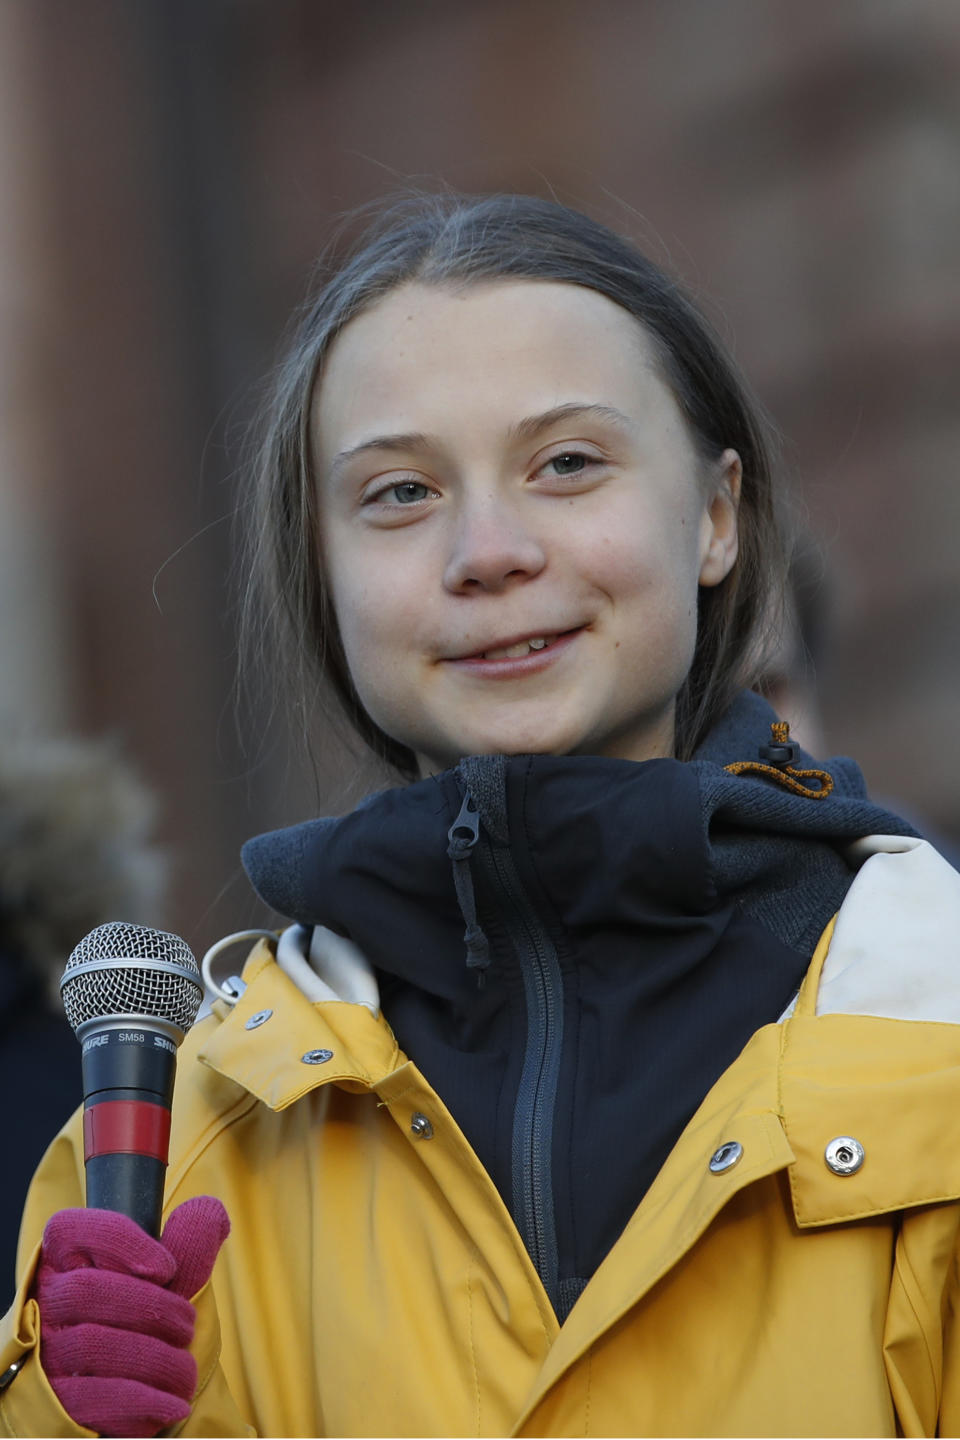 Swedish environmental activist Greta Thunberg attends a climate march, in Turin, Italy, Friday. Dec. 13, 2019. (AP Photo/Antonio Calanni)